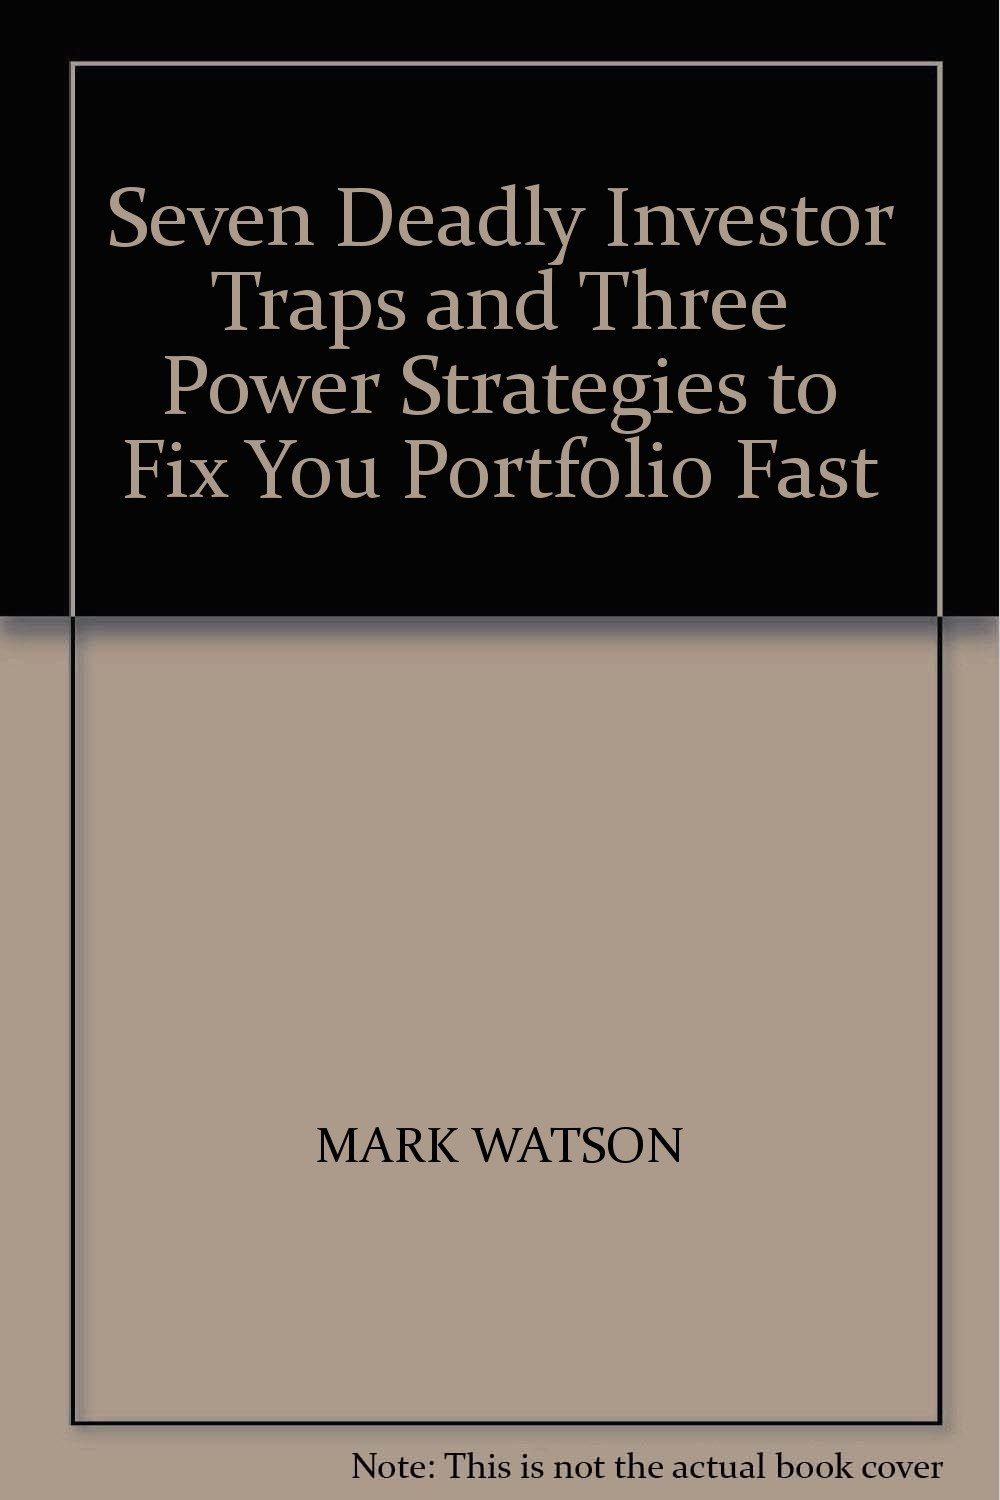 Download Seven Deadly Investor Traps and Three Power Strategies to Fix You Portfolio Fast ebook